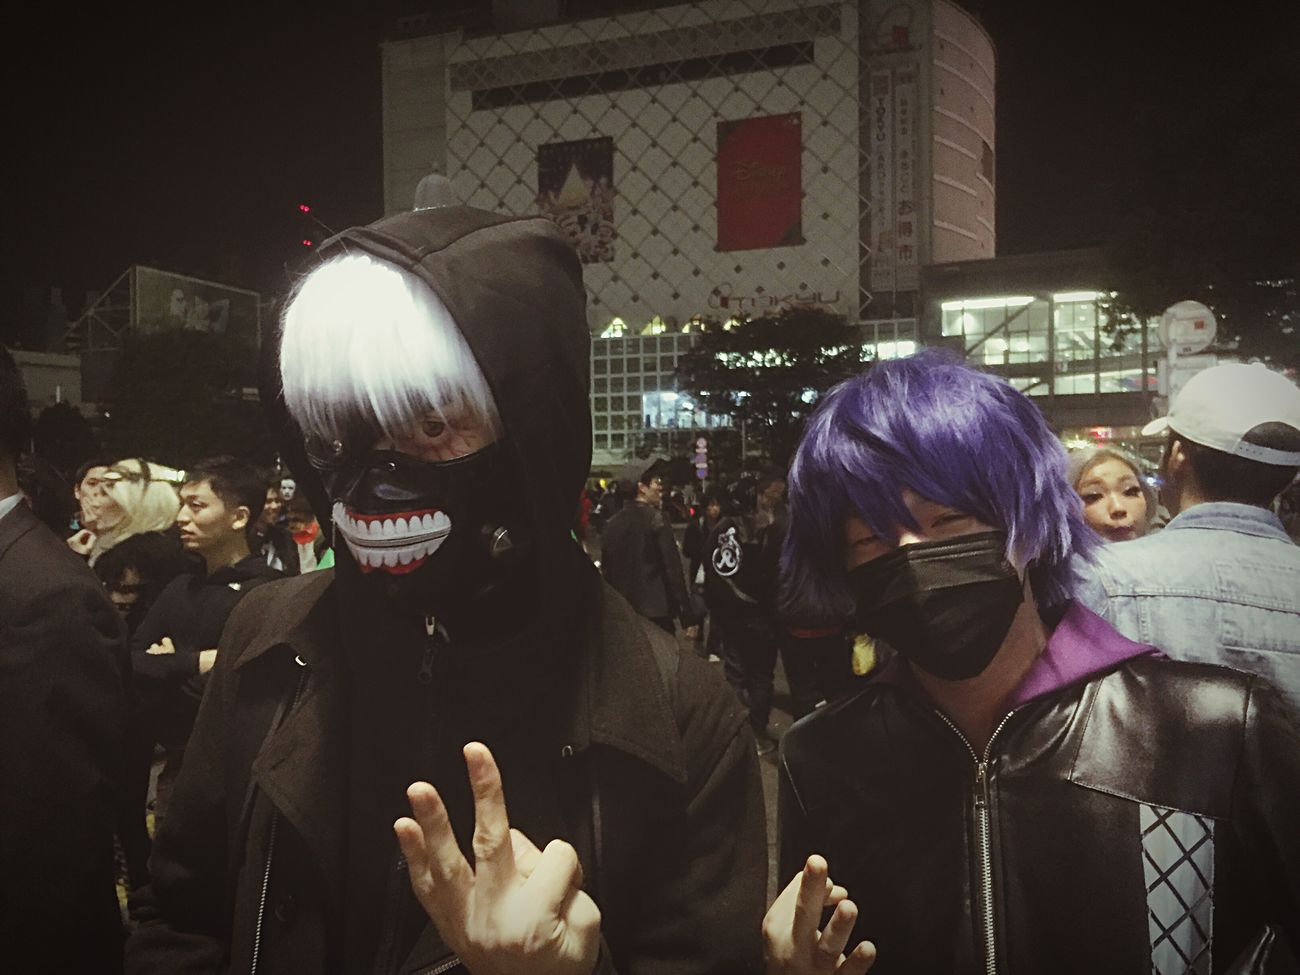 Kaneki!Ayato!と言うことで、今から103本君の骨を折る! Shibuya Halloween Night ◀️👻😈🦁 Tokyo Ghoul Kanekiken Ayato Anime Manga Street Photography Enjoying Life Capture The Moment Horror Shibuya Urban Cosplay Halloween Natural Light Portrait People Fashion Striking Fashion Walking Around Nightphotography Halloween Horrors Shibuyacrossing